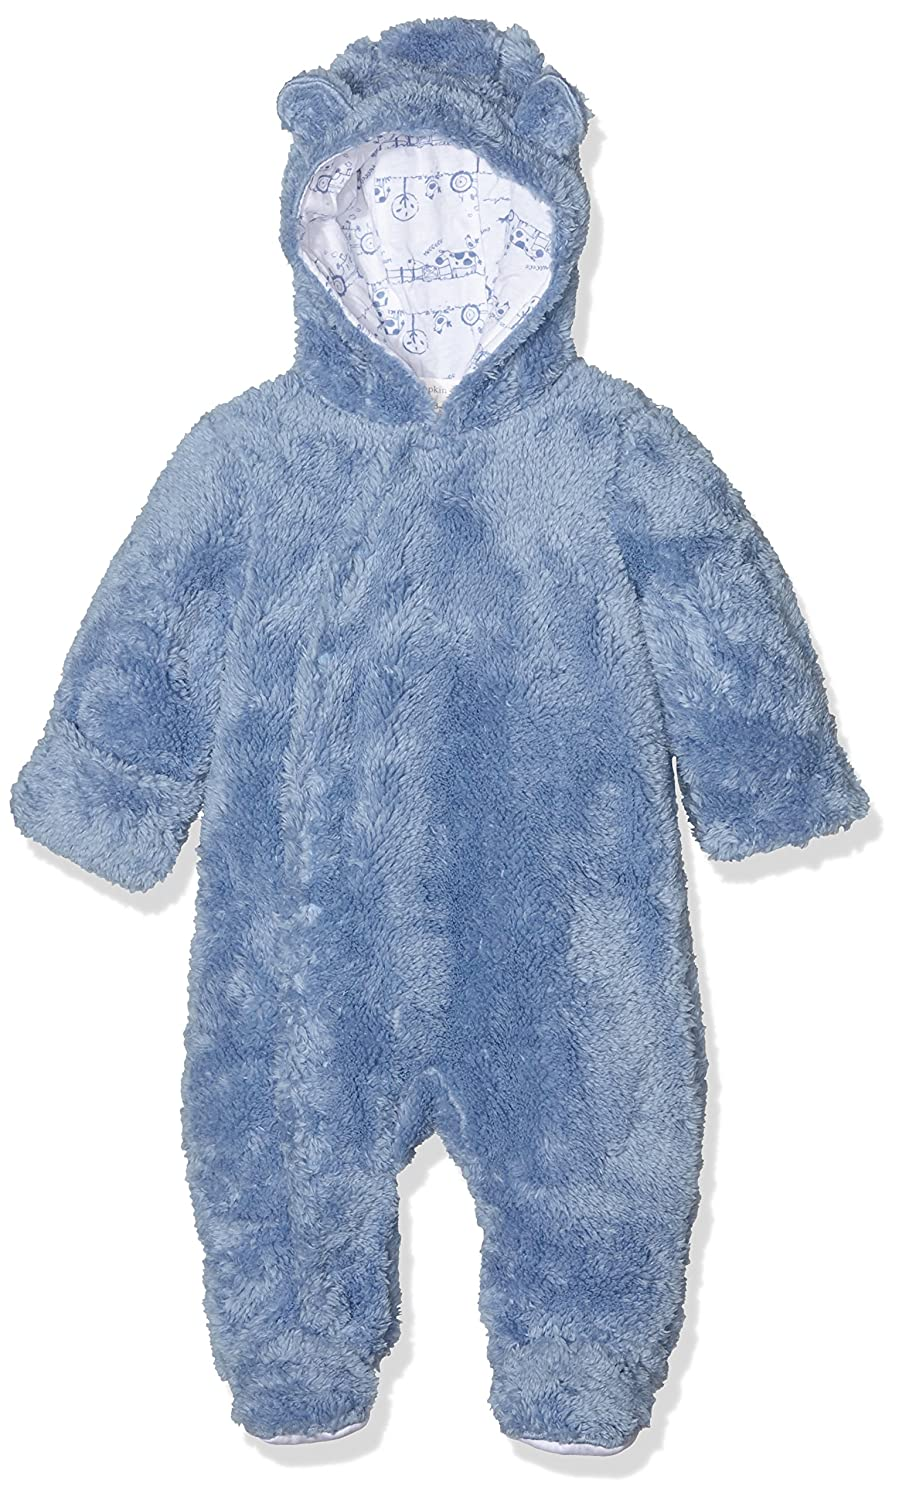 Pumpkin Patch Baby Boys' Furry All in One Footies Blue (Allure) 3-6 Months W6BN20002